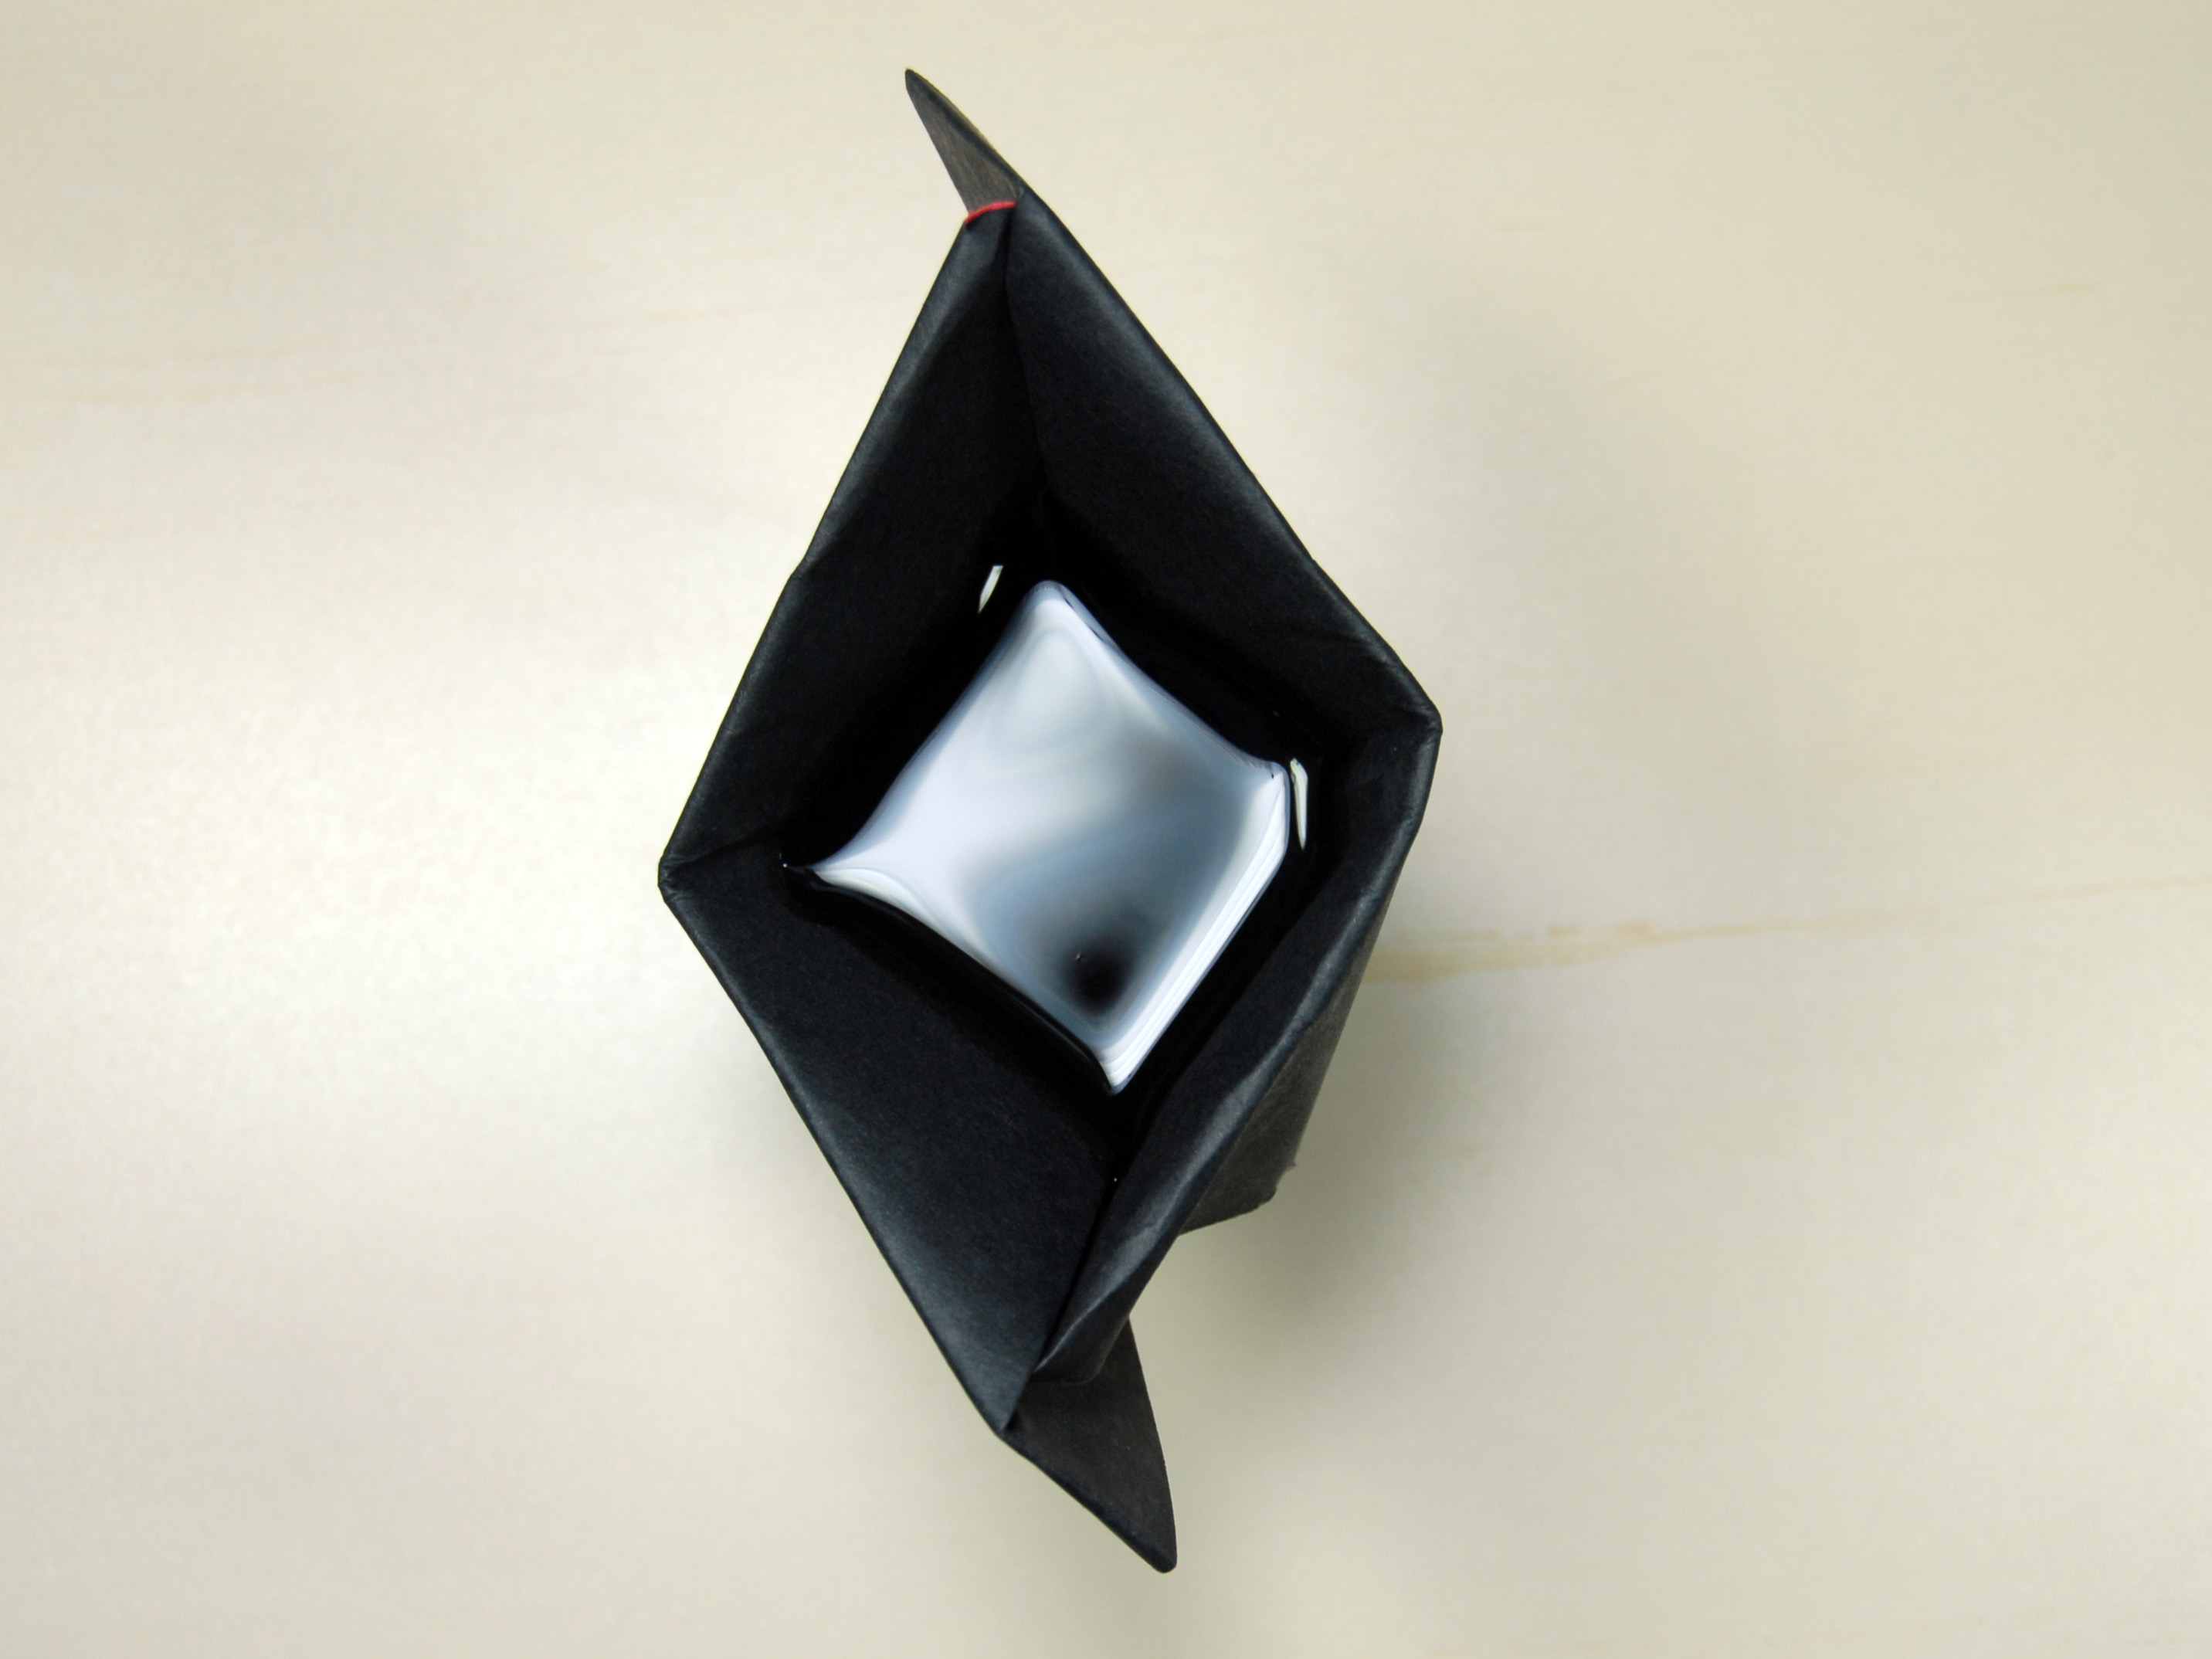 Utilitarian Origami Part I - The Cup